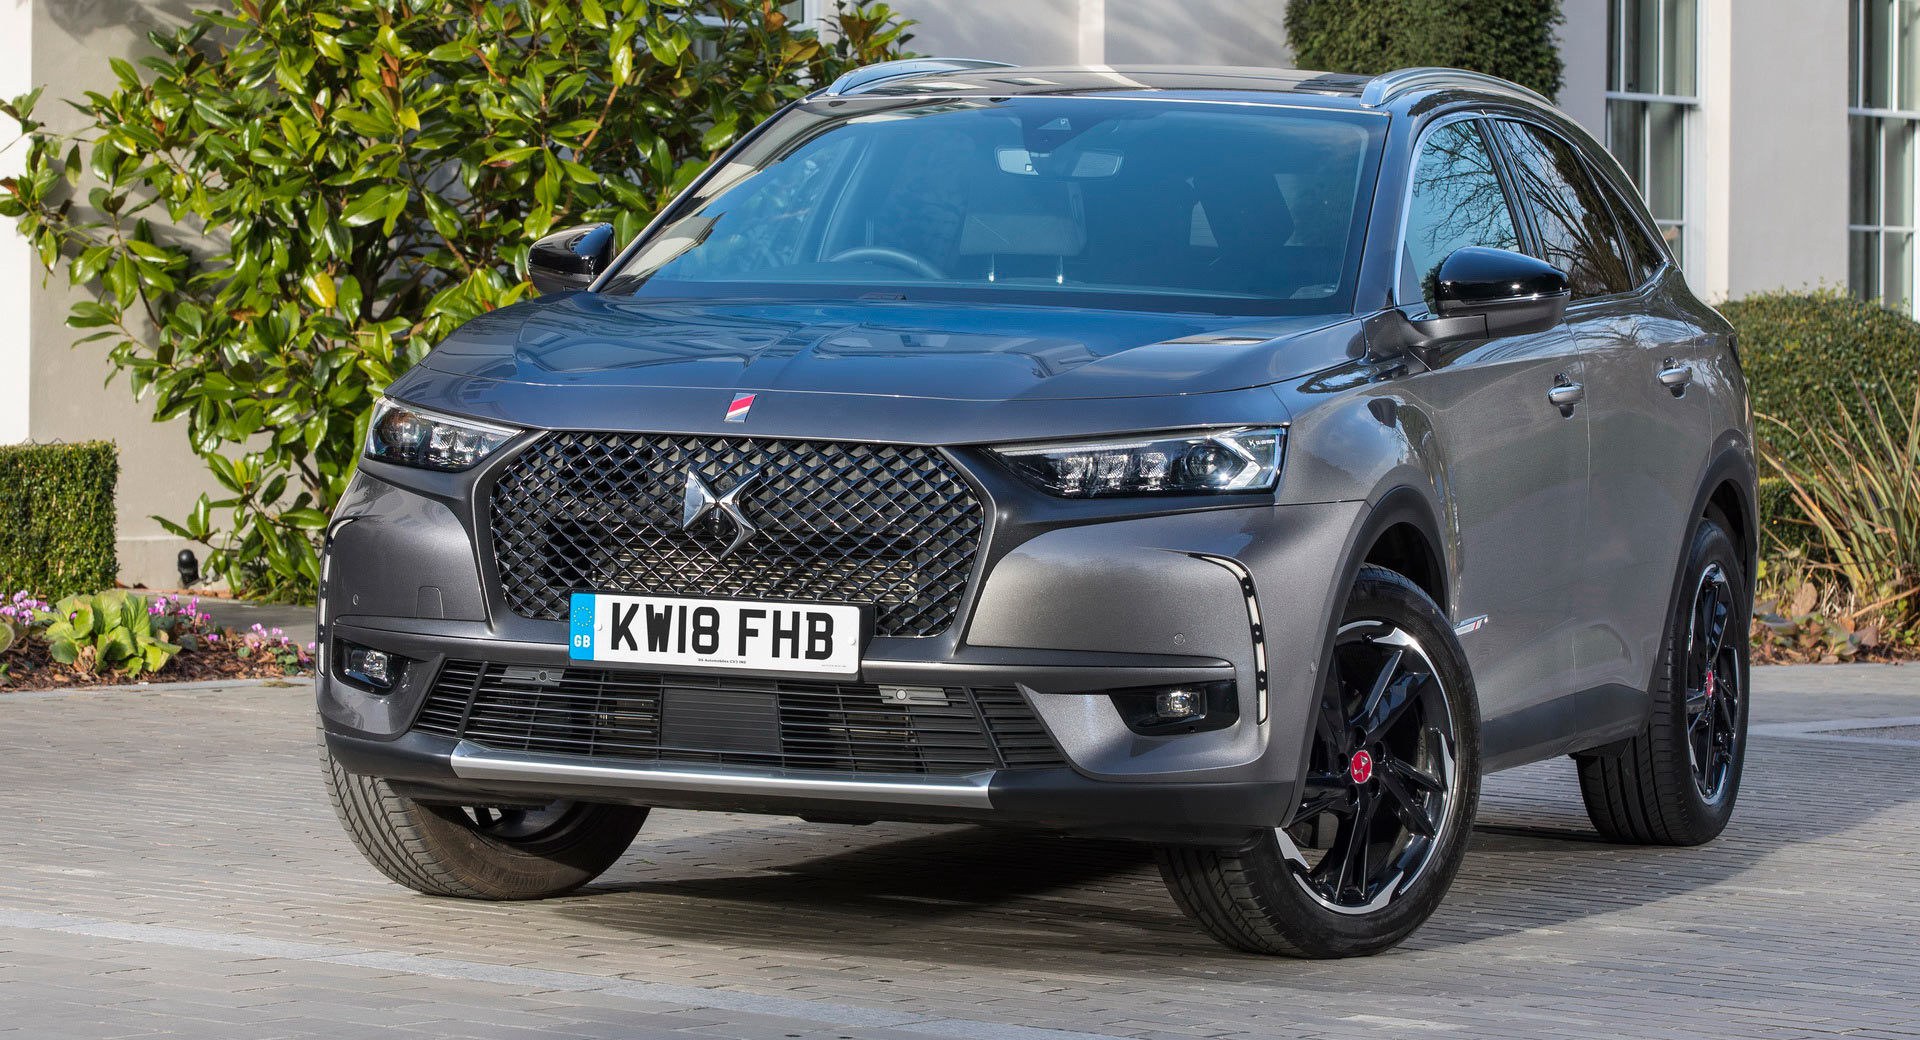 ds7 crossback arrives in the uk ready to steal the show 50 pics carscoops. Black Bedroom Furniture Sets. Home Design Ideas